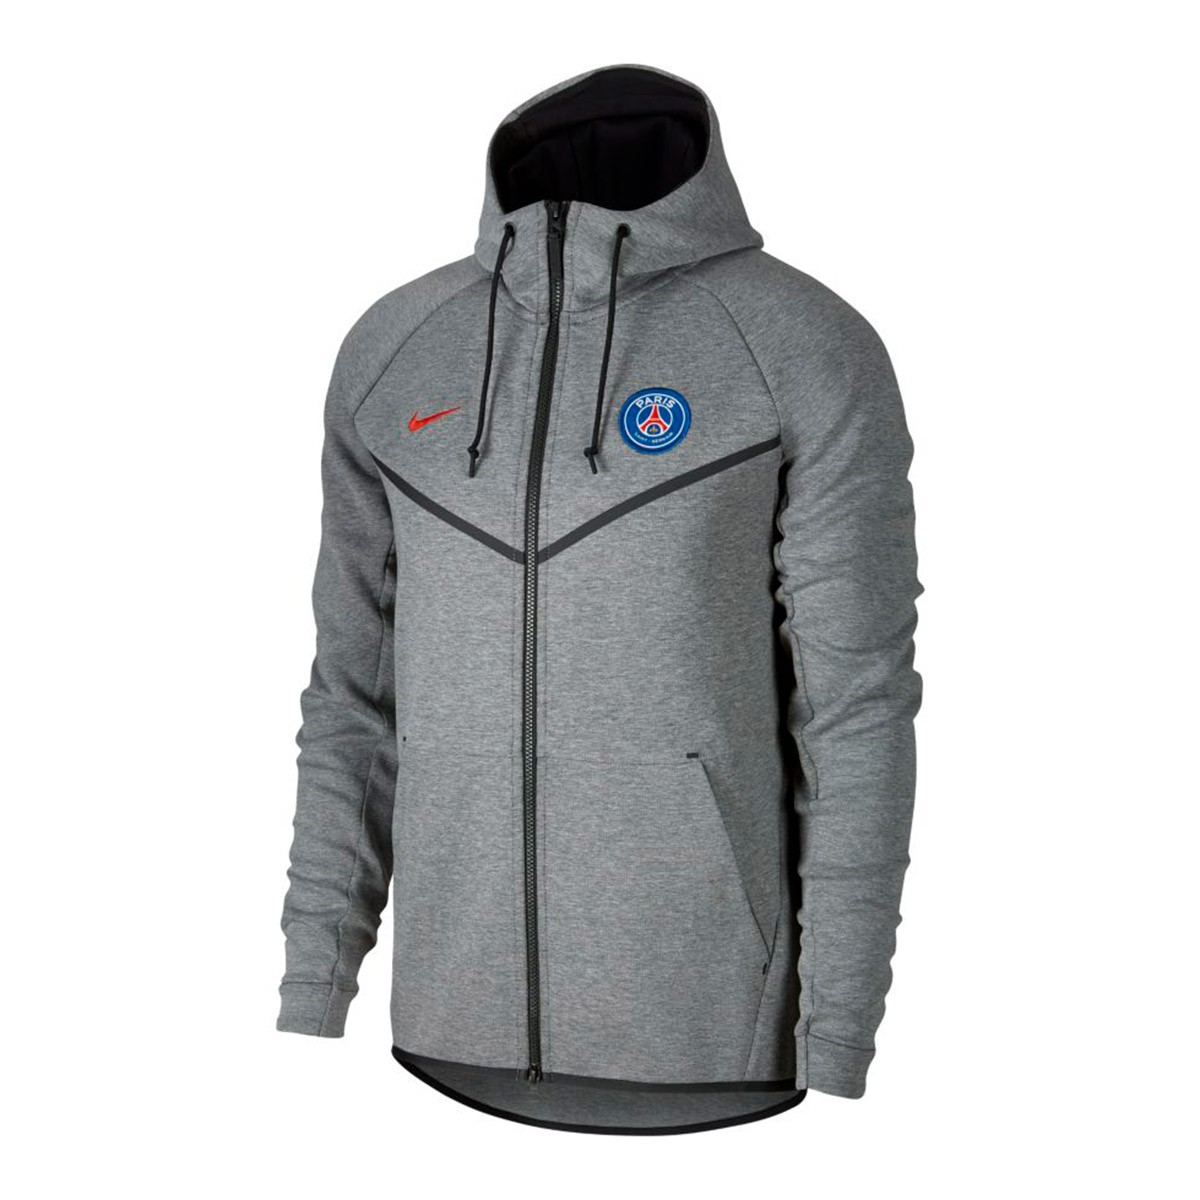 66732ec4 Sweatshirt Nike Paris Saint-Germain NSW 2017-2018 Carbon heather ...